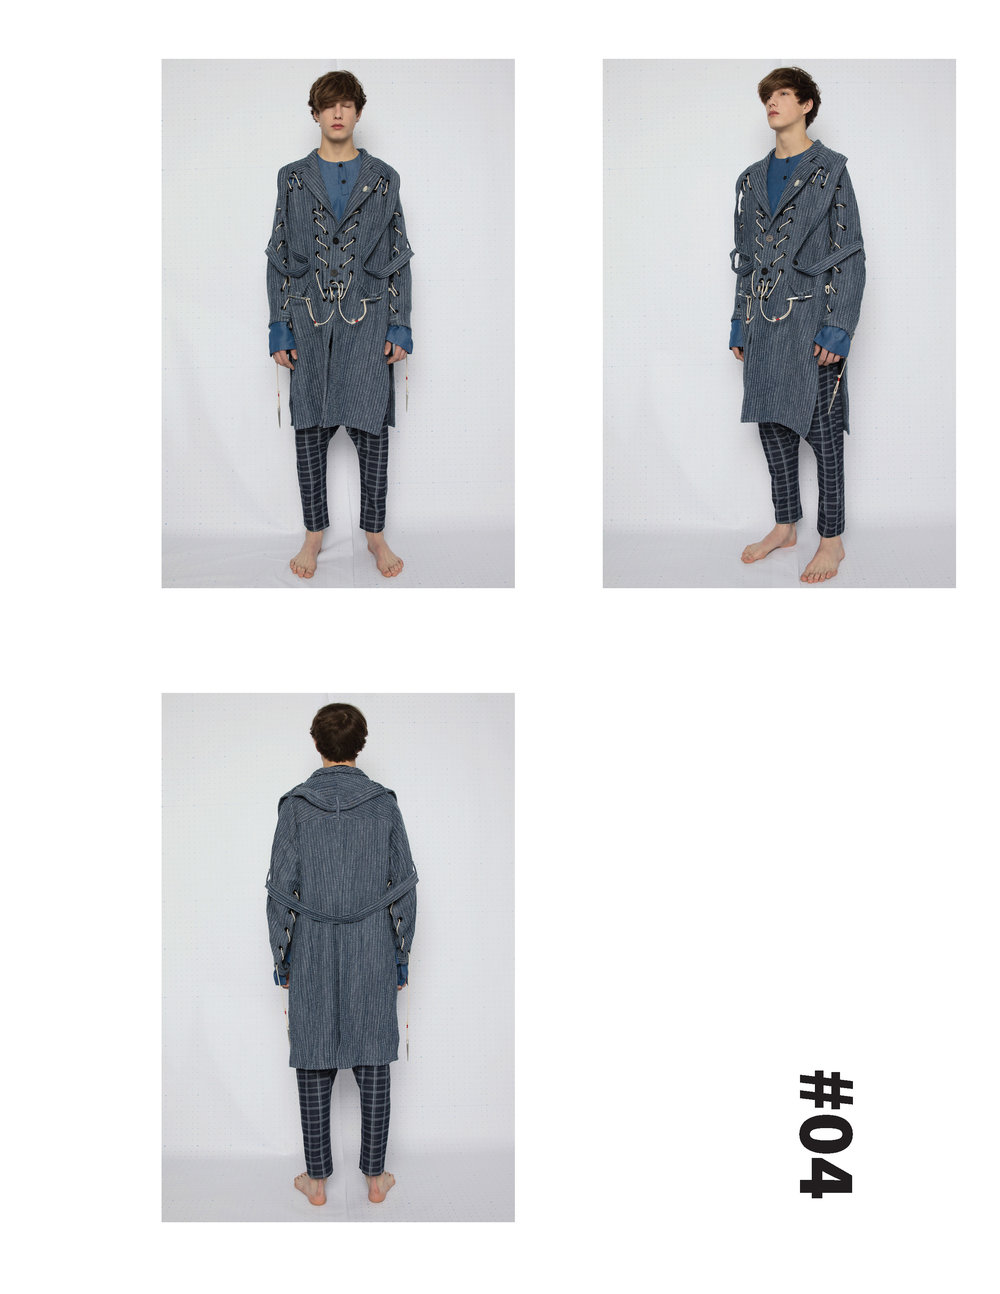 PDF_Outcome01_Lookbook_頁面_21.jpg